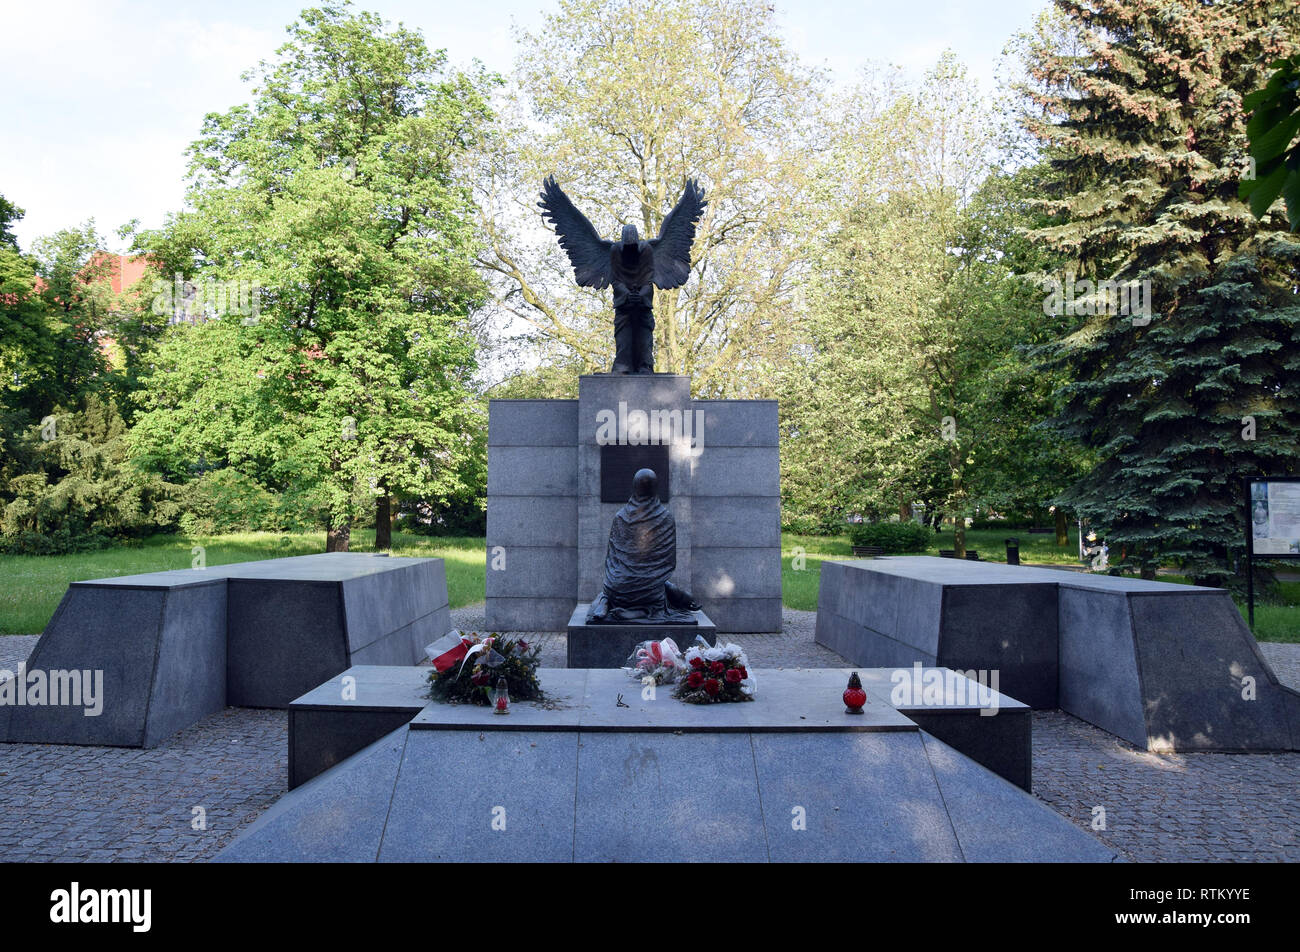 Wroclaw, Poland - May 2017: Monument to the Victims of the Katyn Massacre. Wroclaw, Poland. - Stock Image